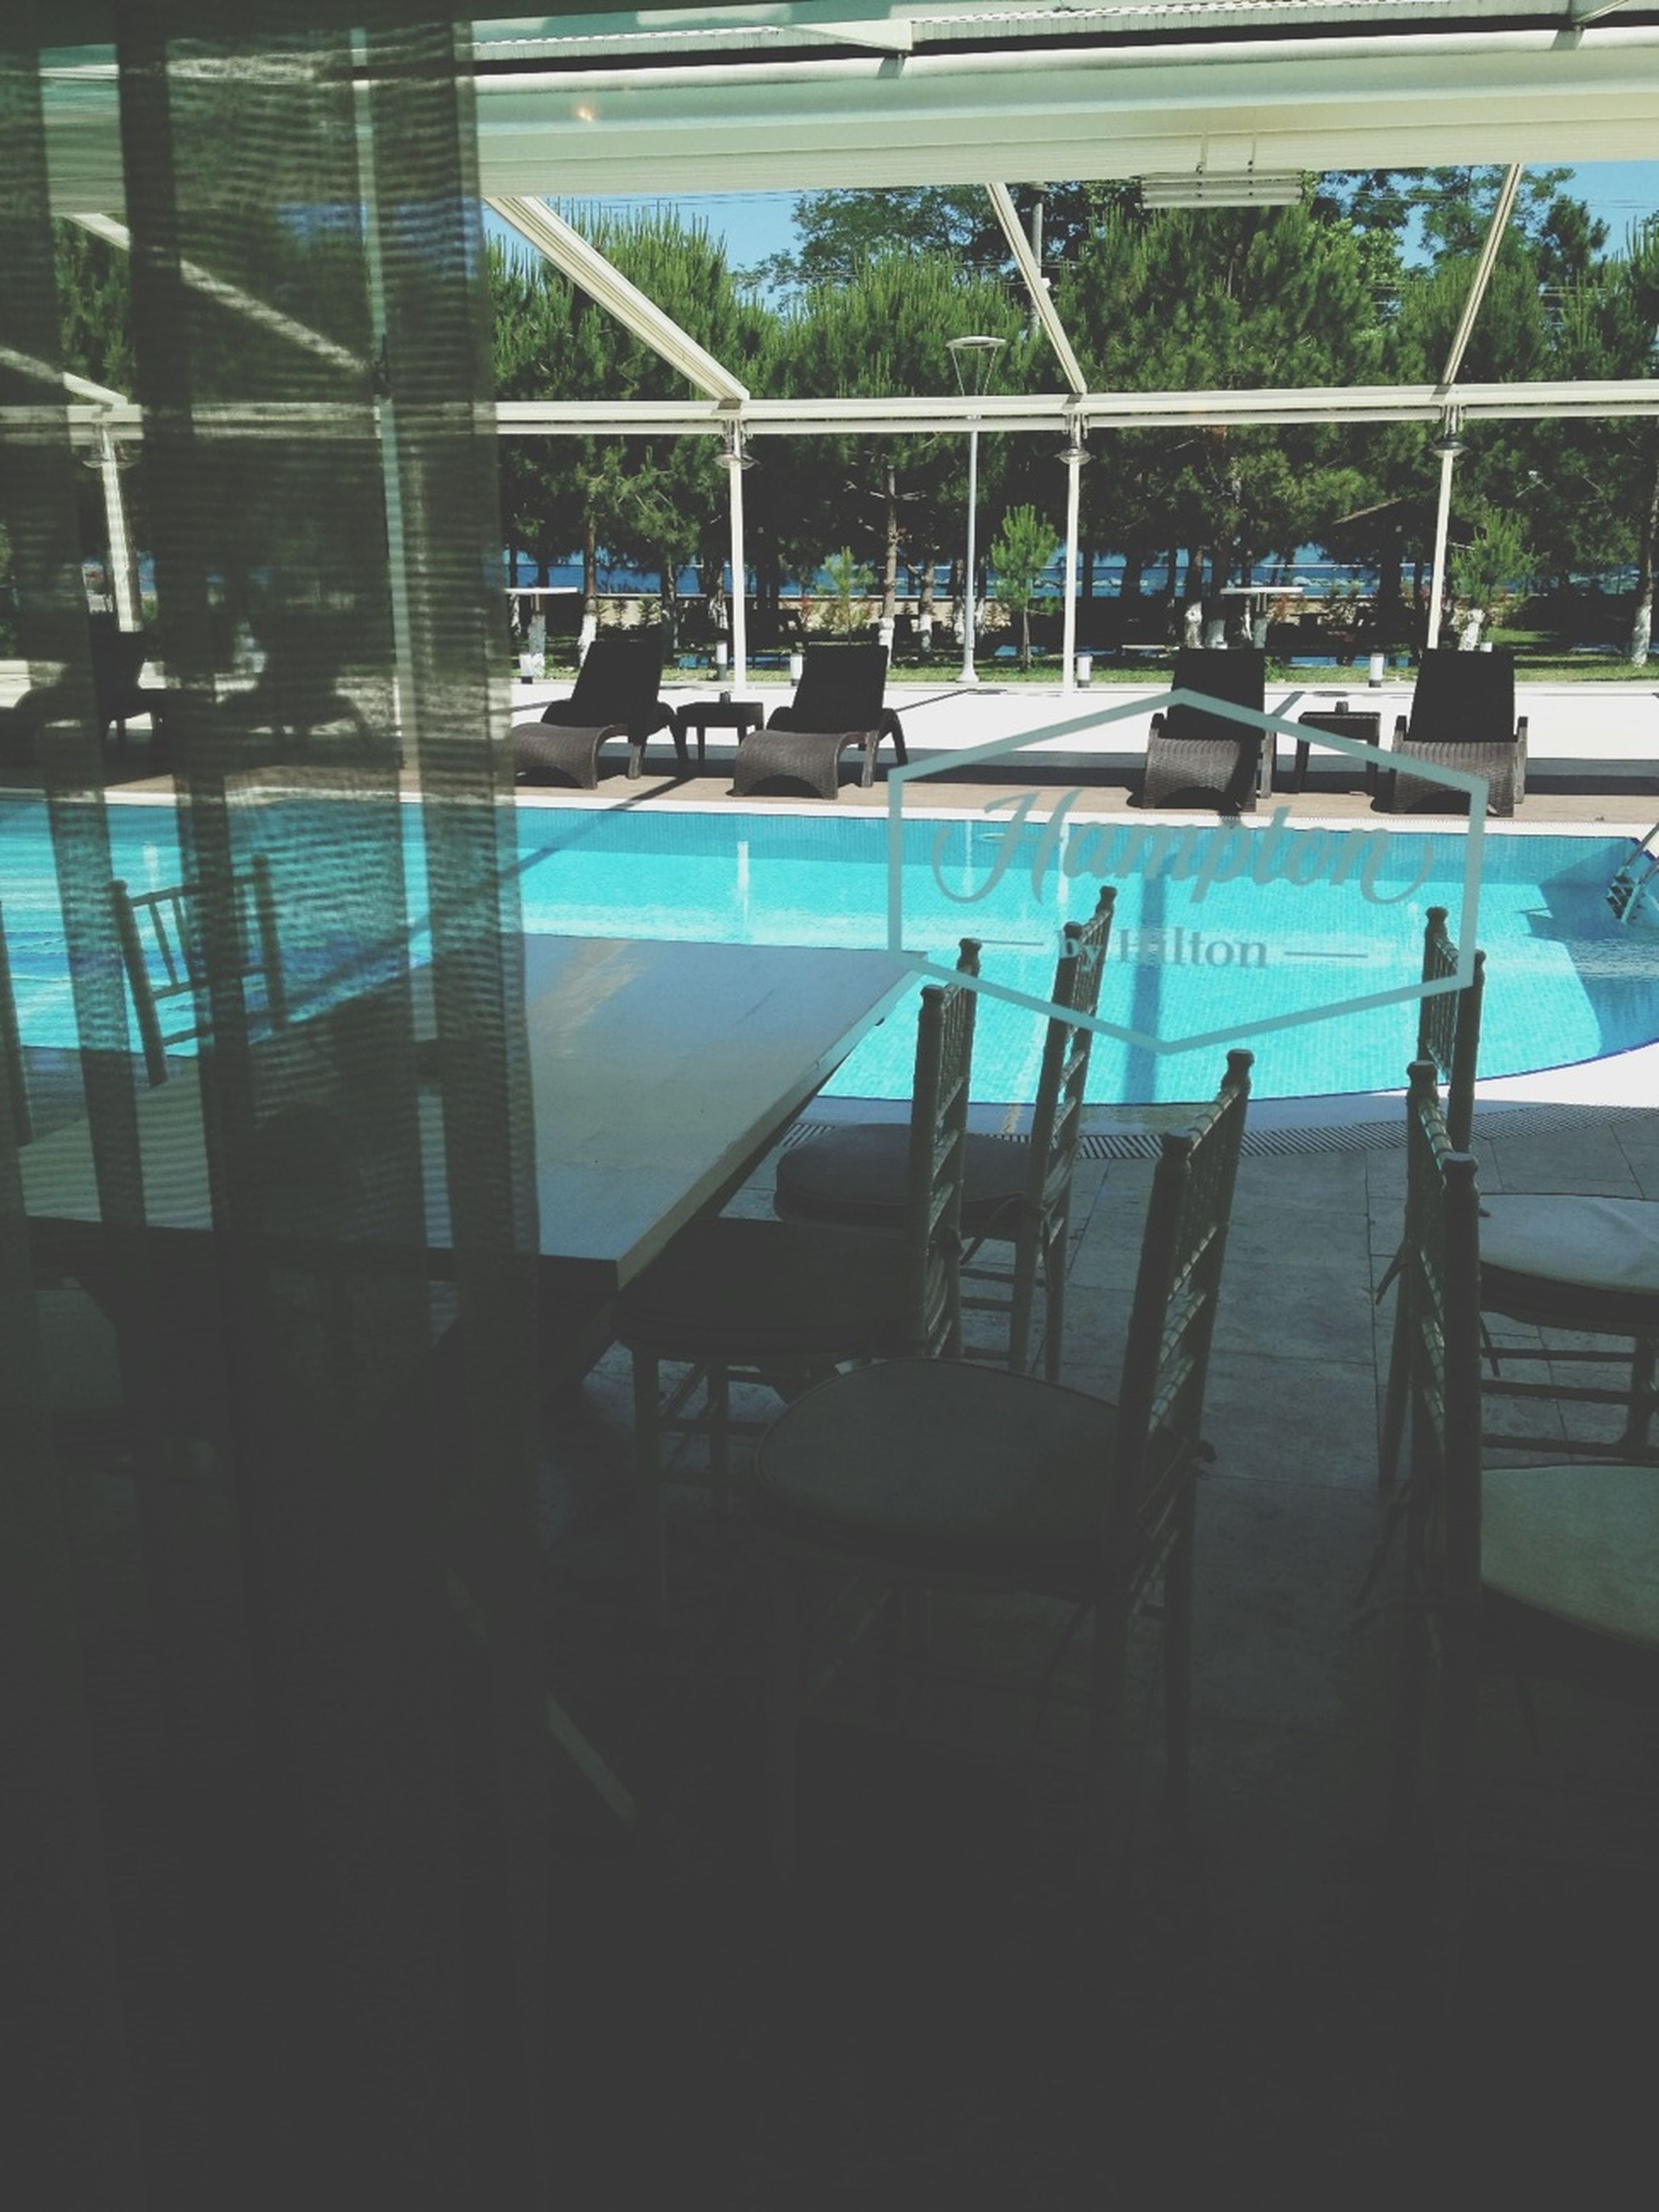 chair, table, empty, blue, absence, indoors, sunlight, built structure, window, swimming pool, day, architecture, glass - material, no people, shadow, reflection, restaurant, railing, water, seat